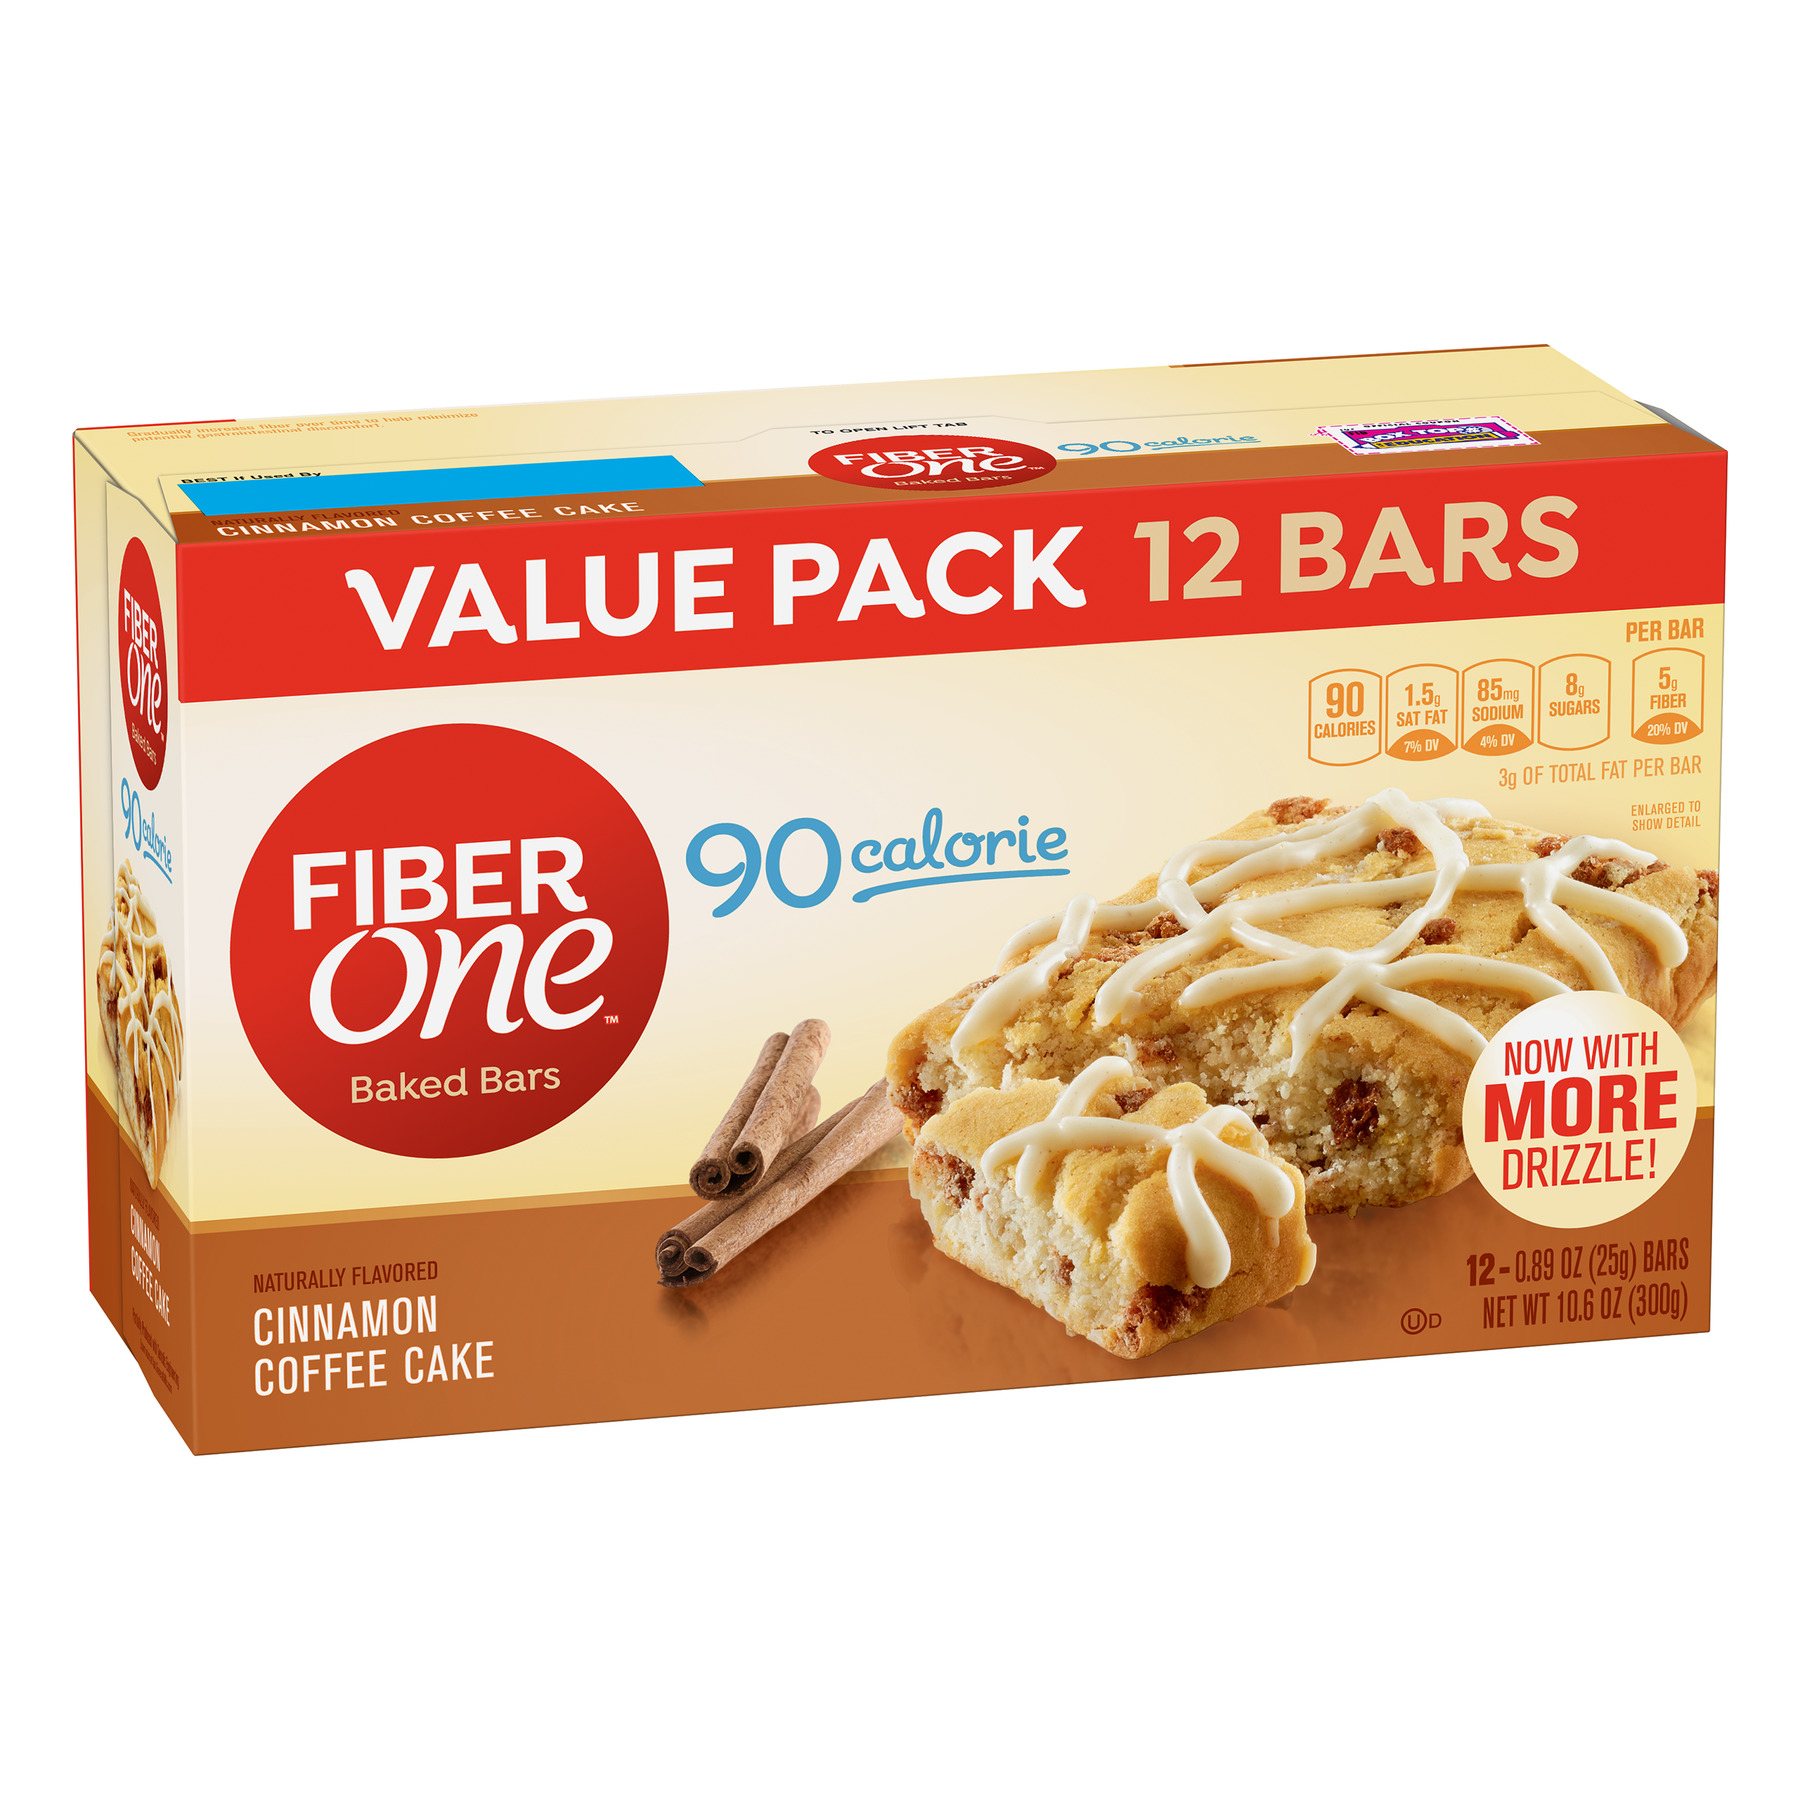 Fiber One 90 Calorie Soft-Baked Bar, Cinnamon Coffee Cake, 12 Fiber Bars, 10.6 oz (Value Pack)